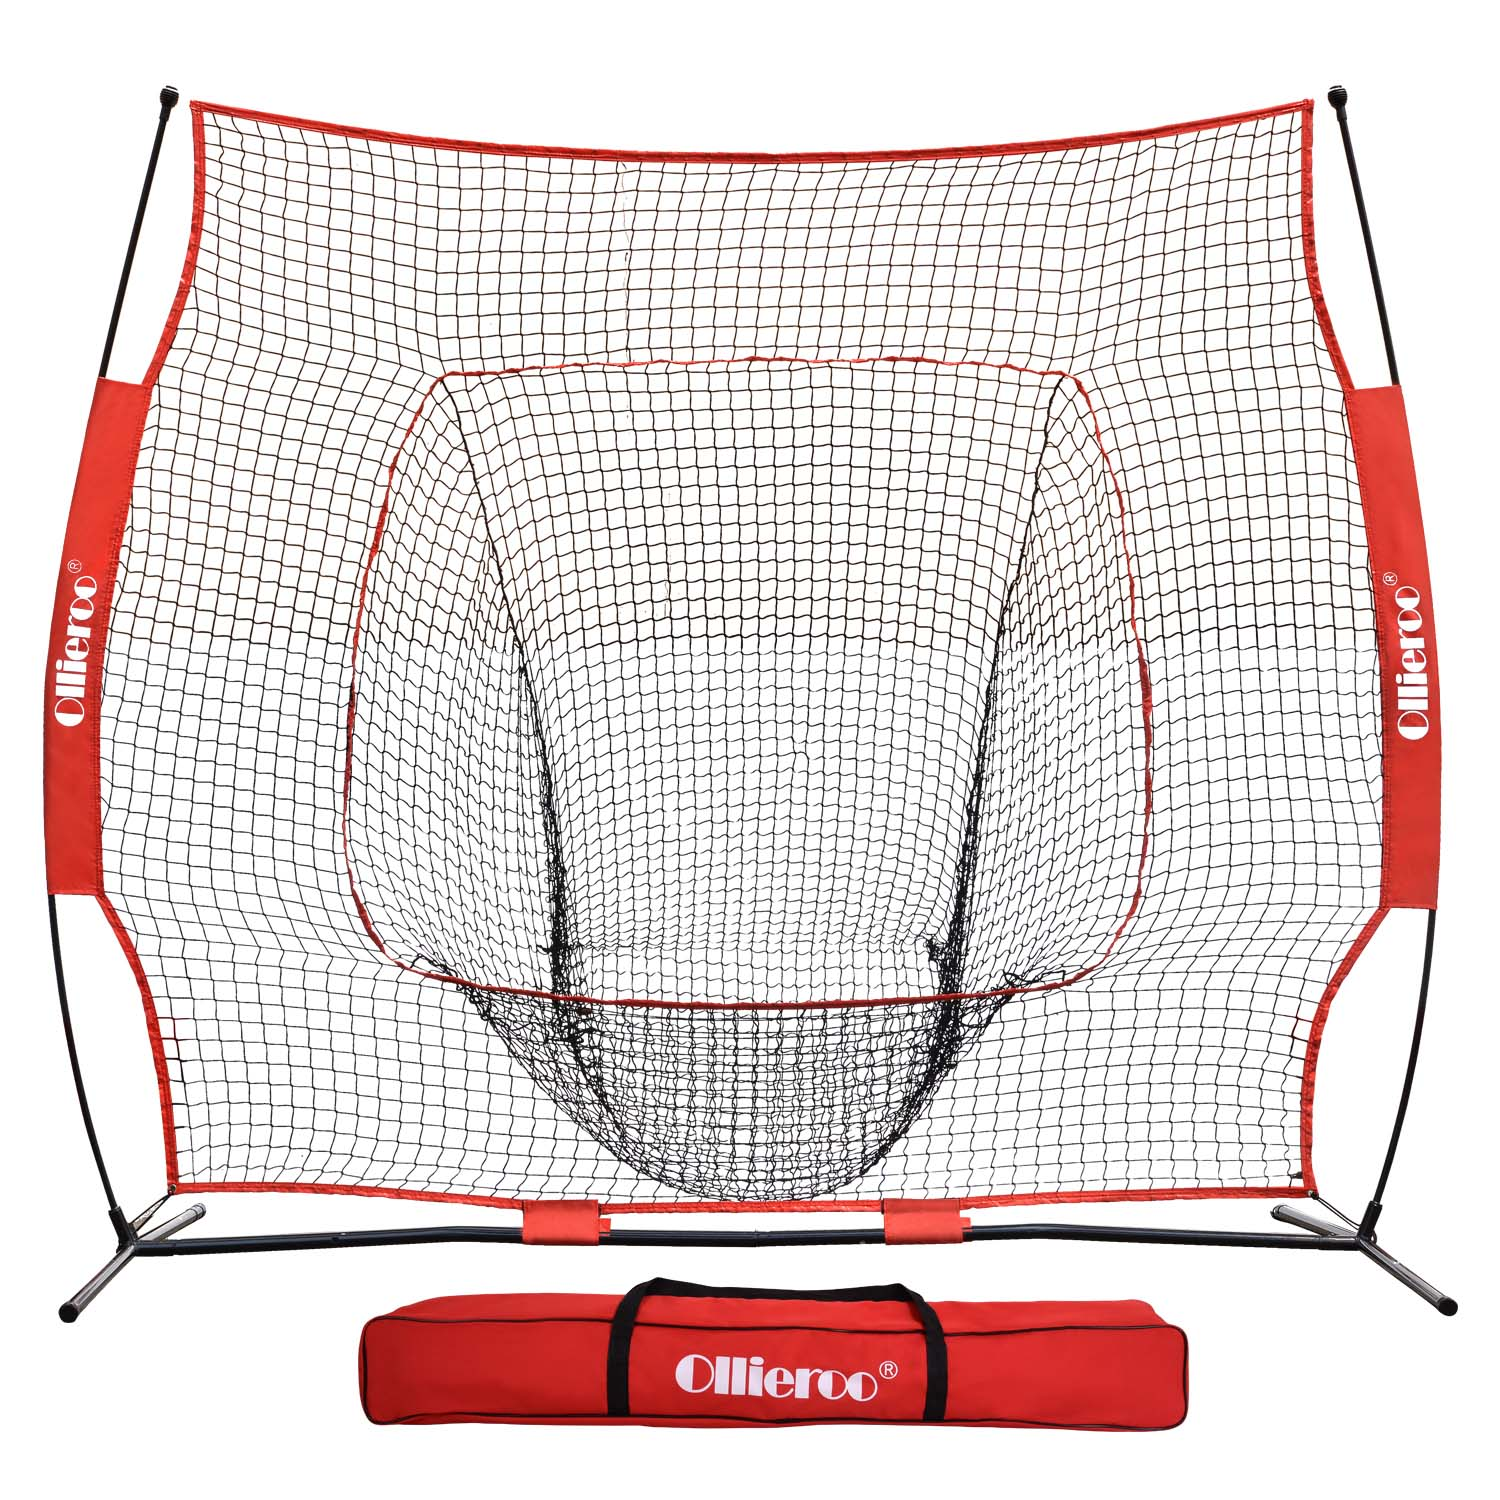 Ollieroo 7'x7 Baseball and Softball Practice Net for Hitting, Pitching, Backstop Screen Equipment Training Aids Red / Black, Includes Carry Bag